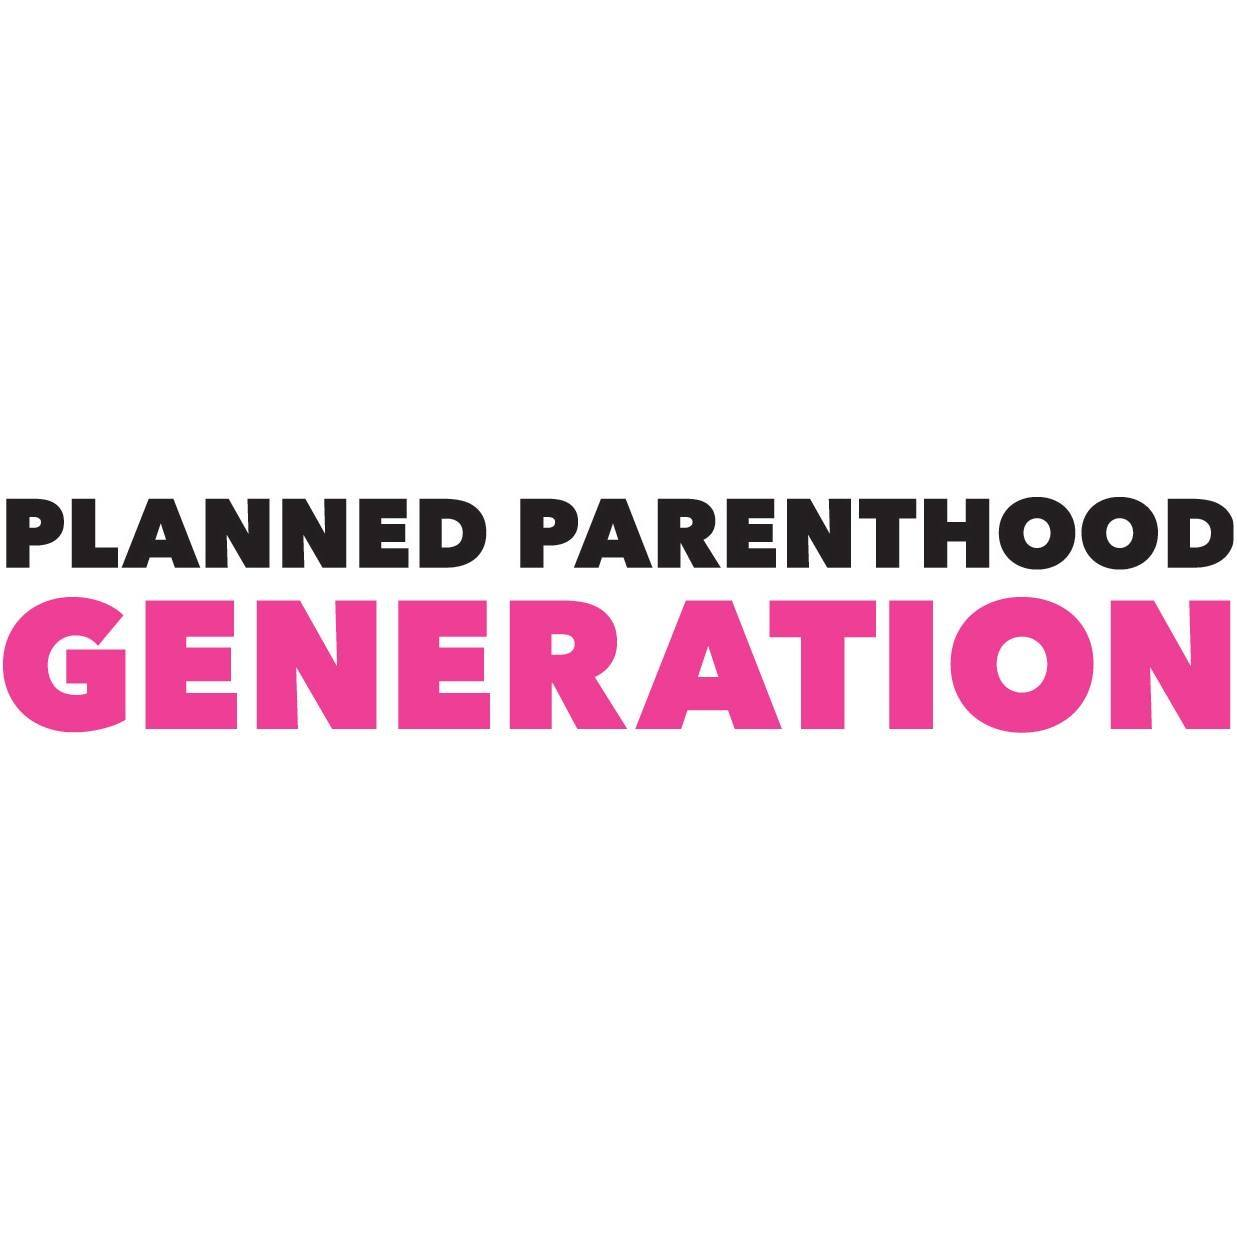 Planned Parenthood Generation